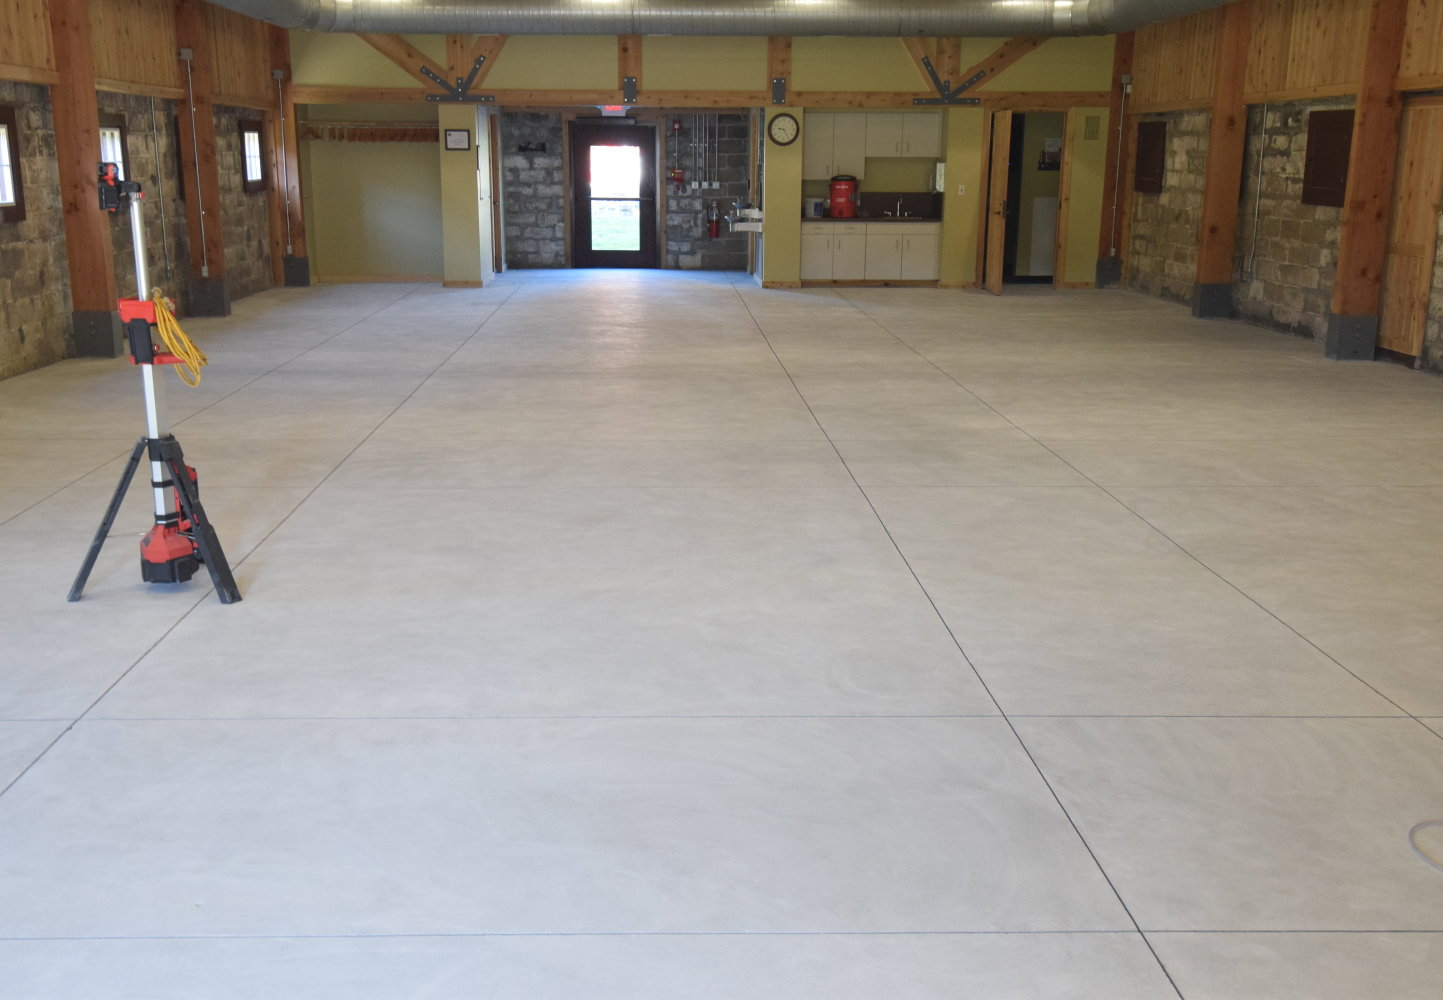 "This concrete floor was ground with a 7"" diamond cup grinder to remove a thin sealer in preparation for a new coating.  The uniform, off-white appearance is how concrete should look after cleaning."